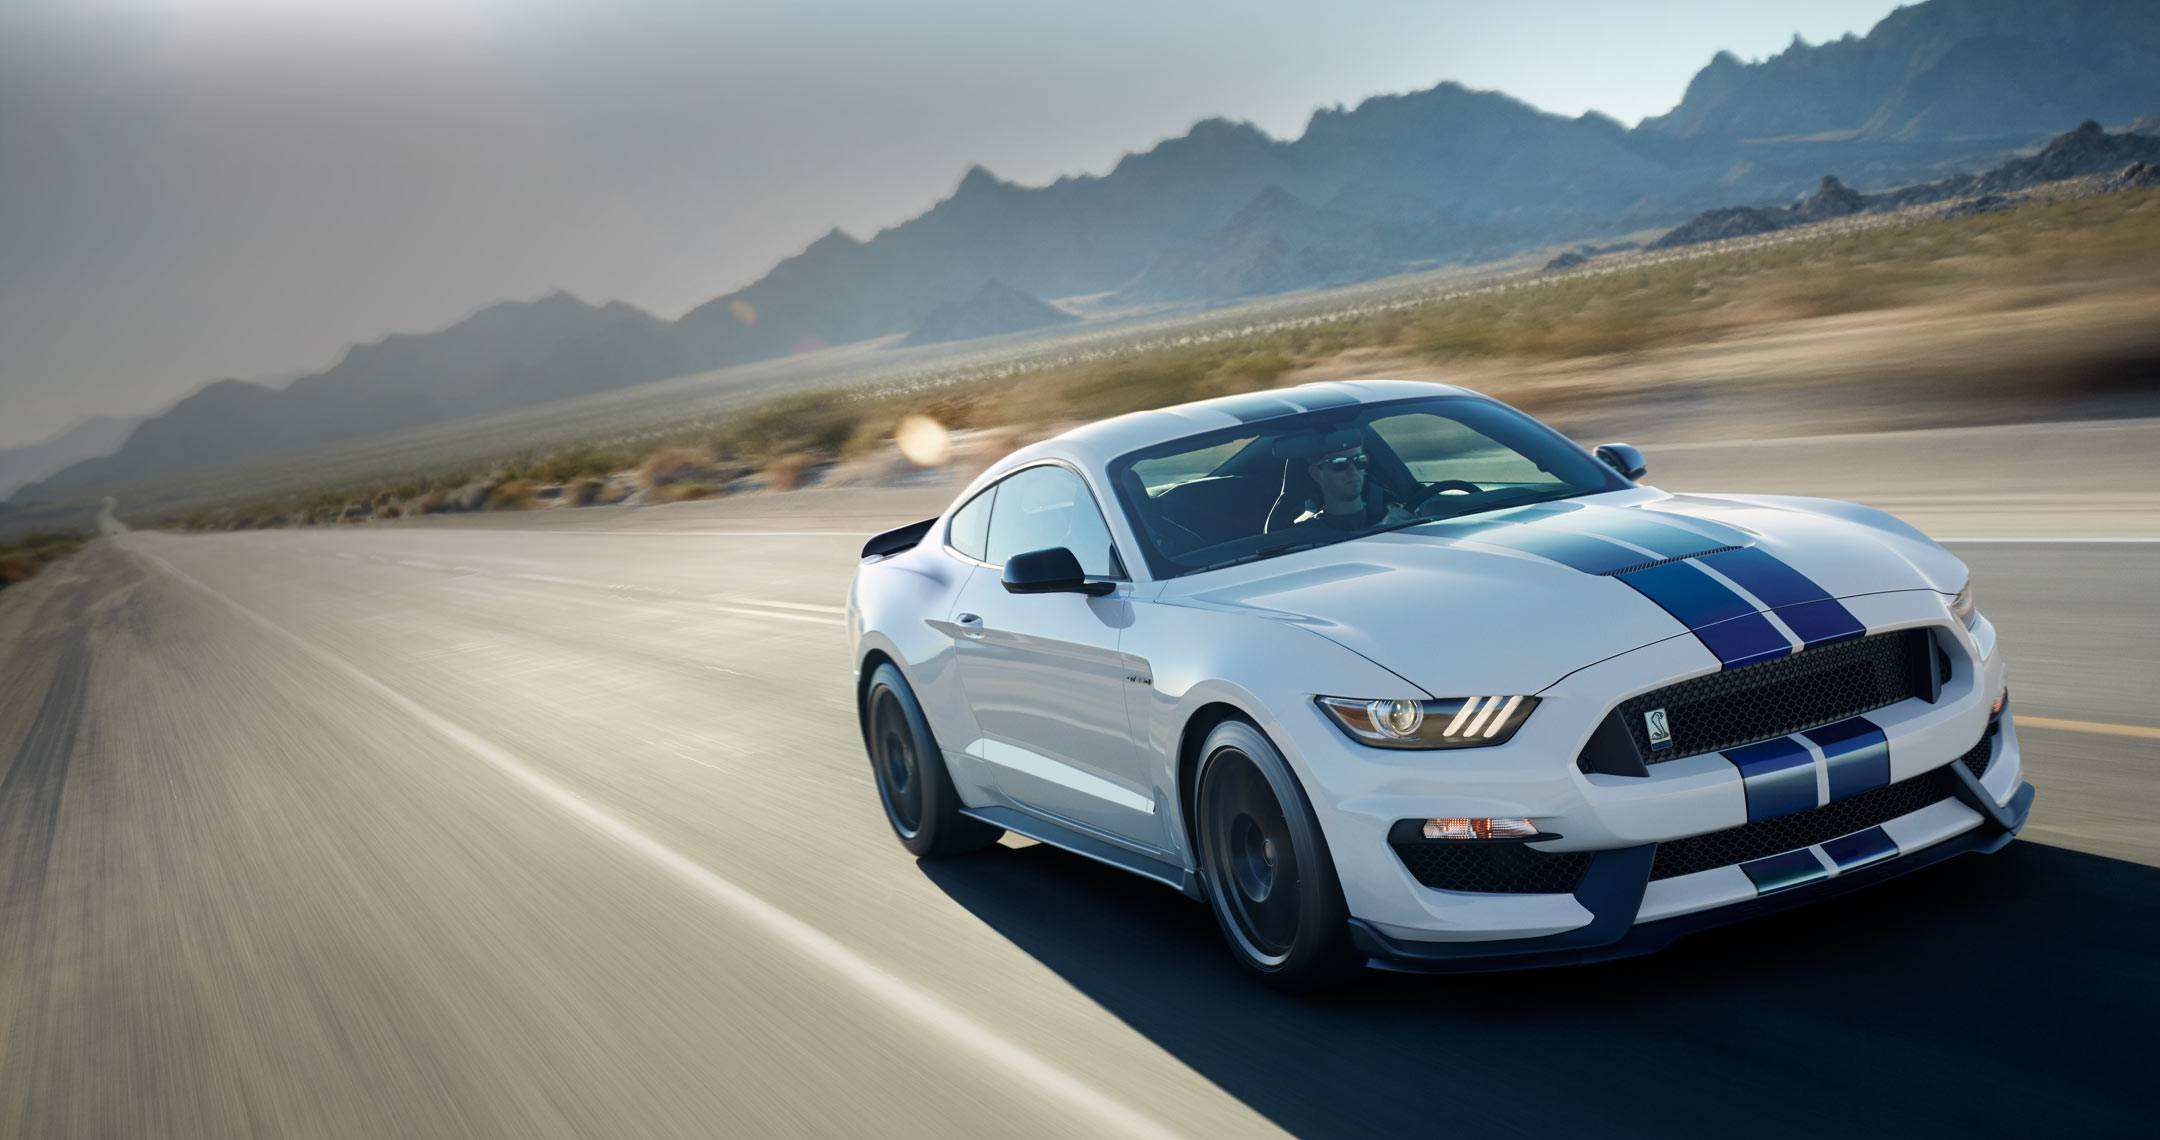 Ford Shelby Gt350 #6